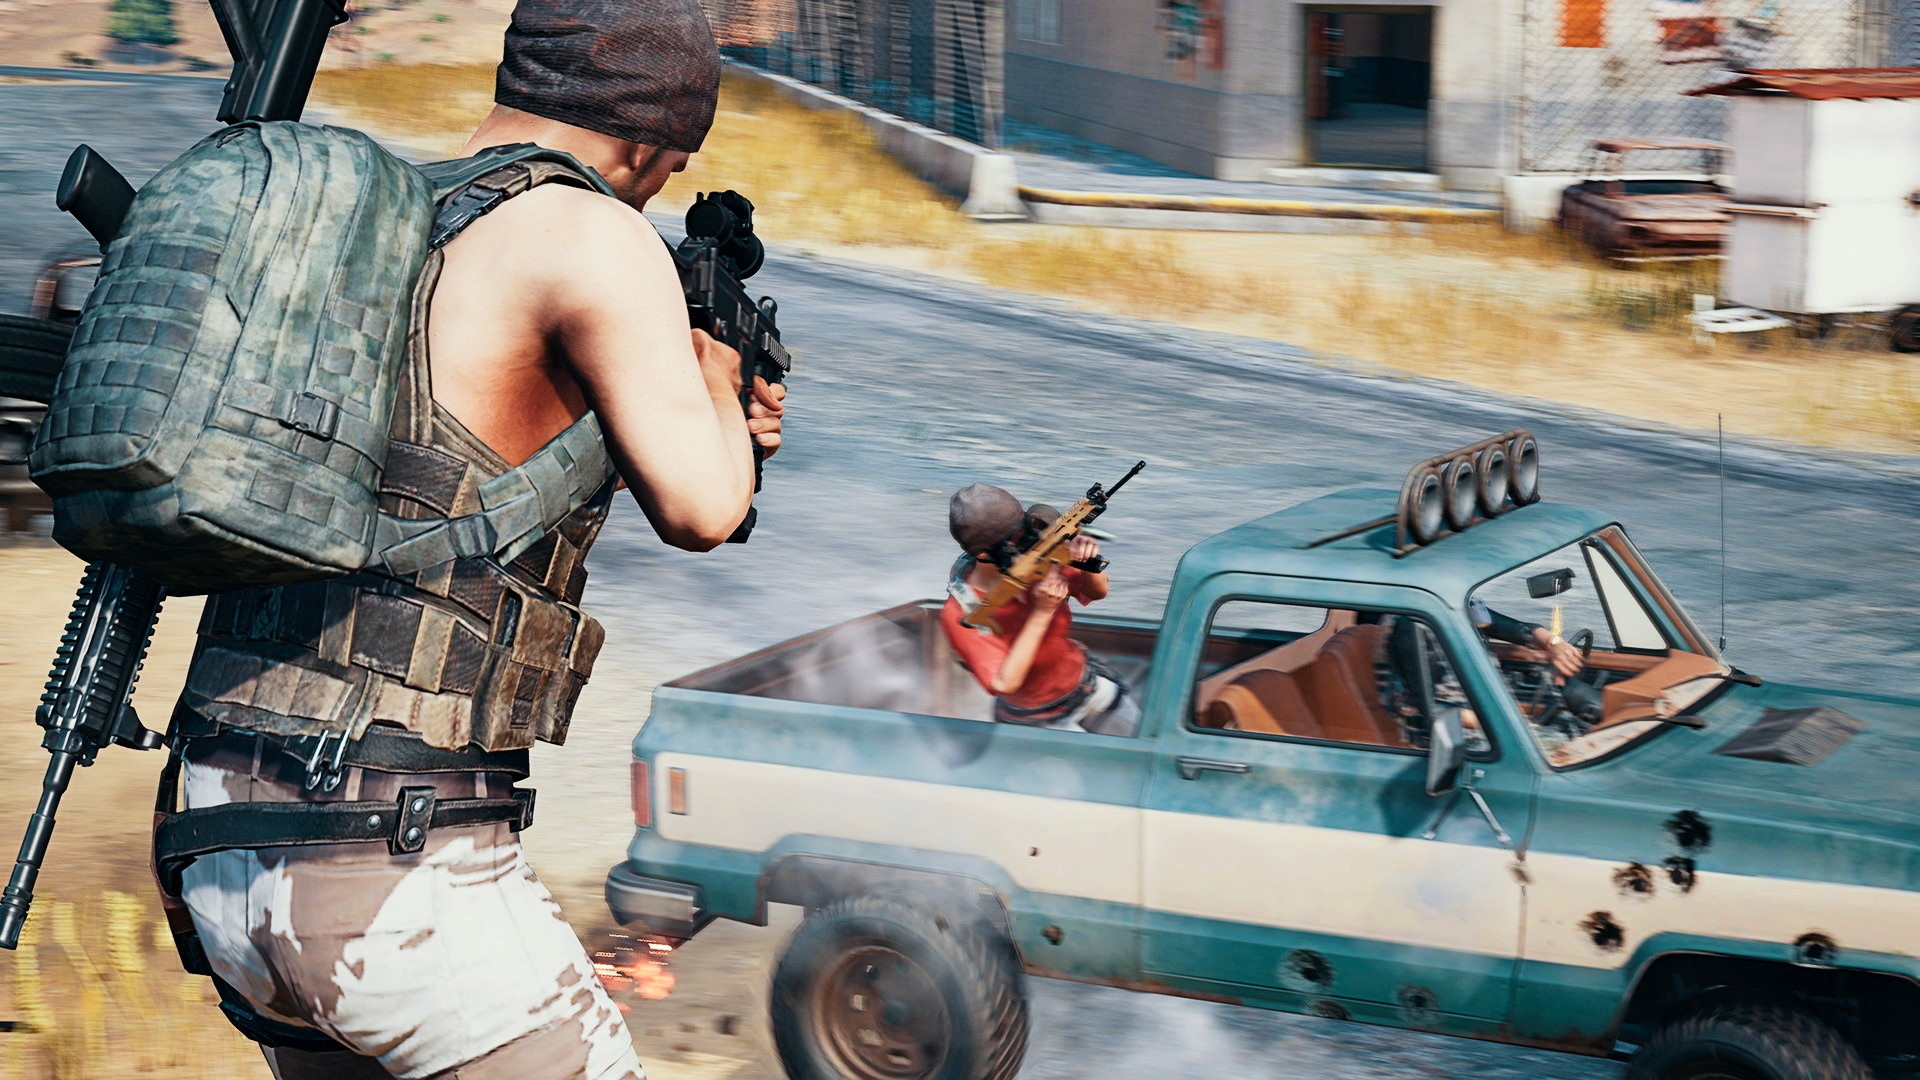 PUBG's drive-by tactic is getting nerfed in an upcoming update